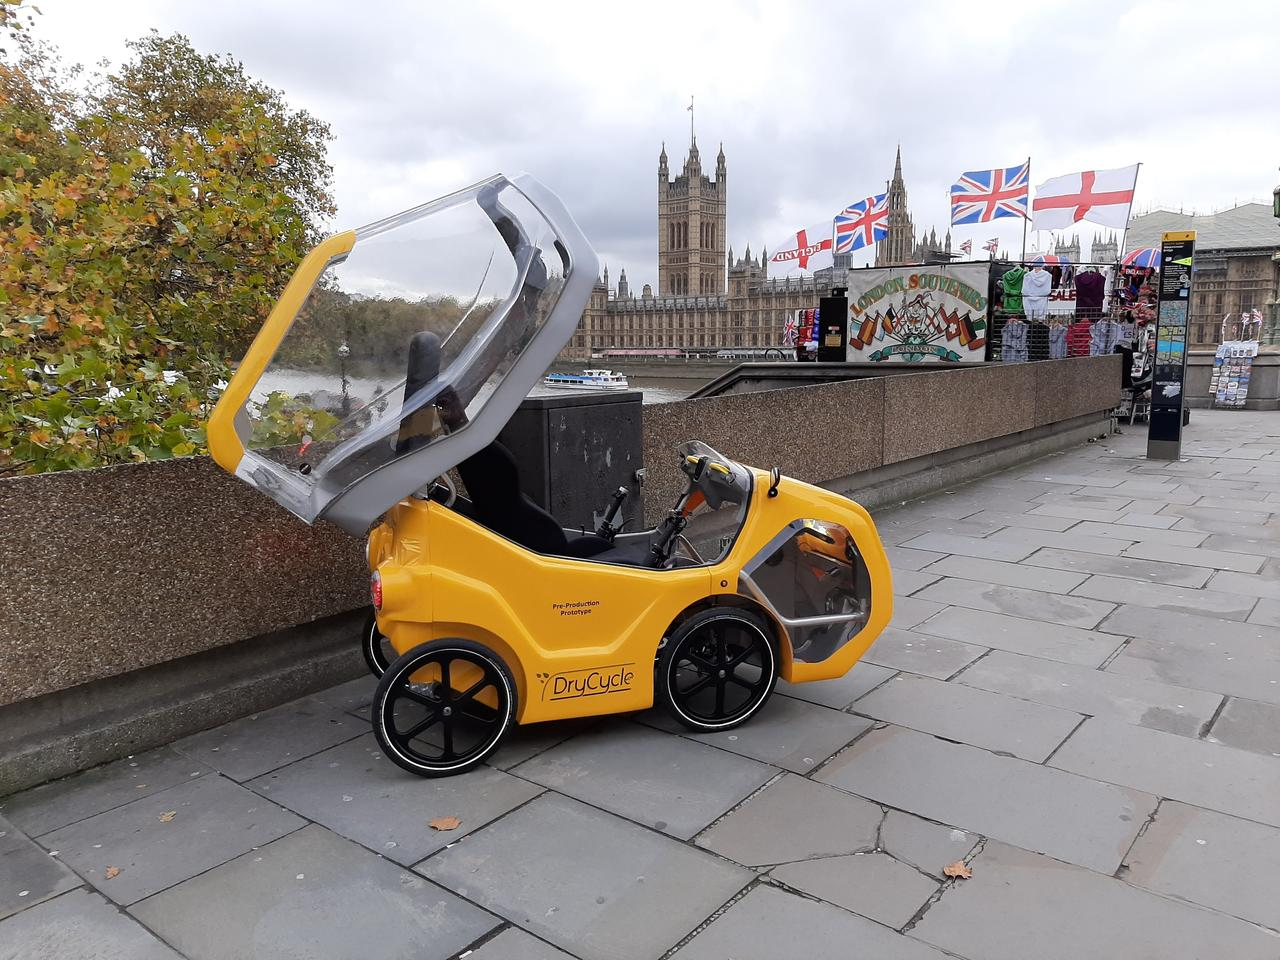 According to the company, the DryCycle can legally be ridden anywhere that bicycles are allowed